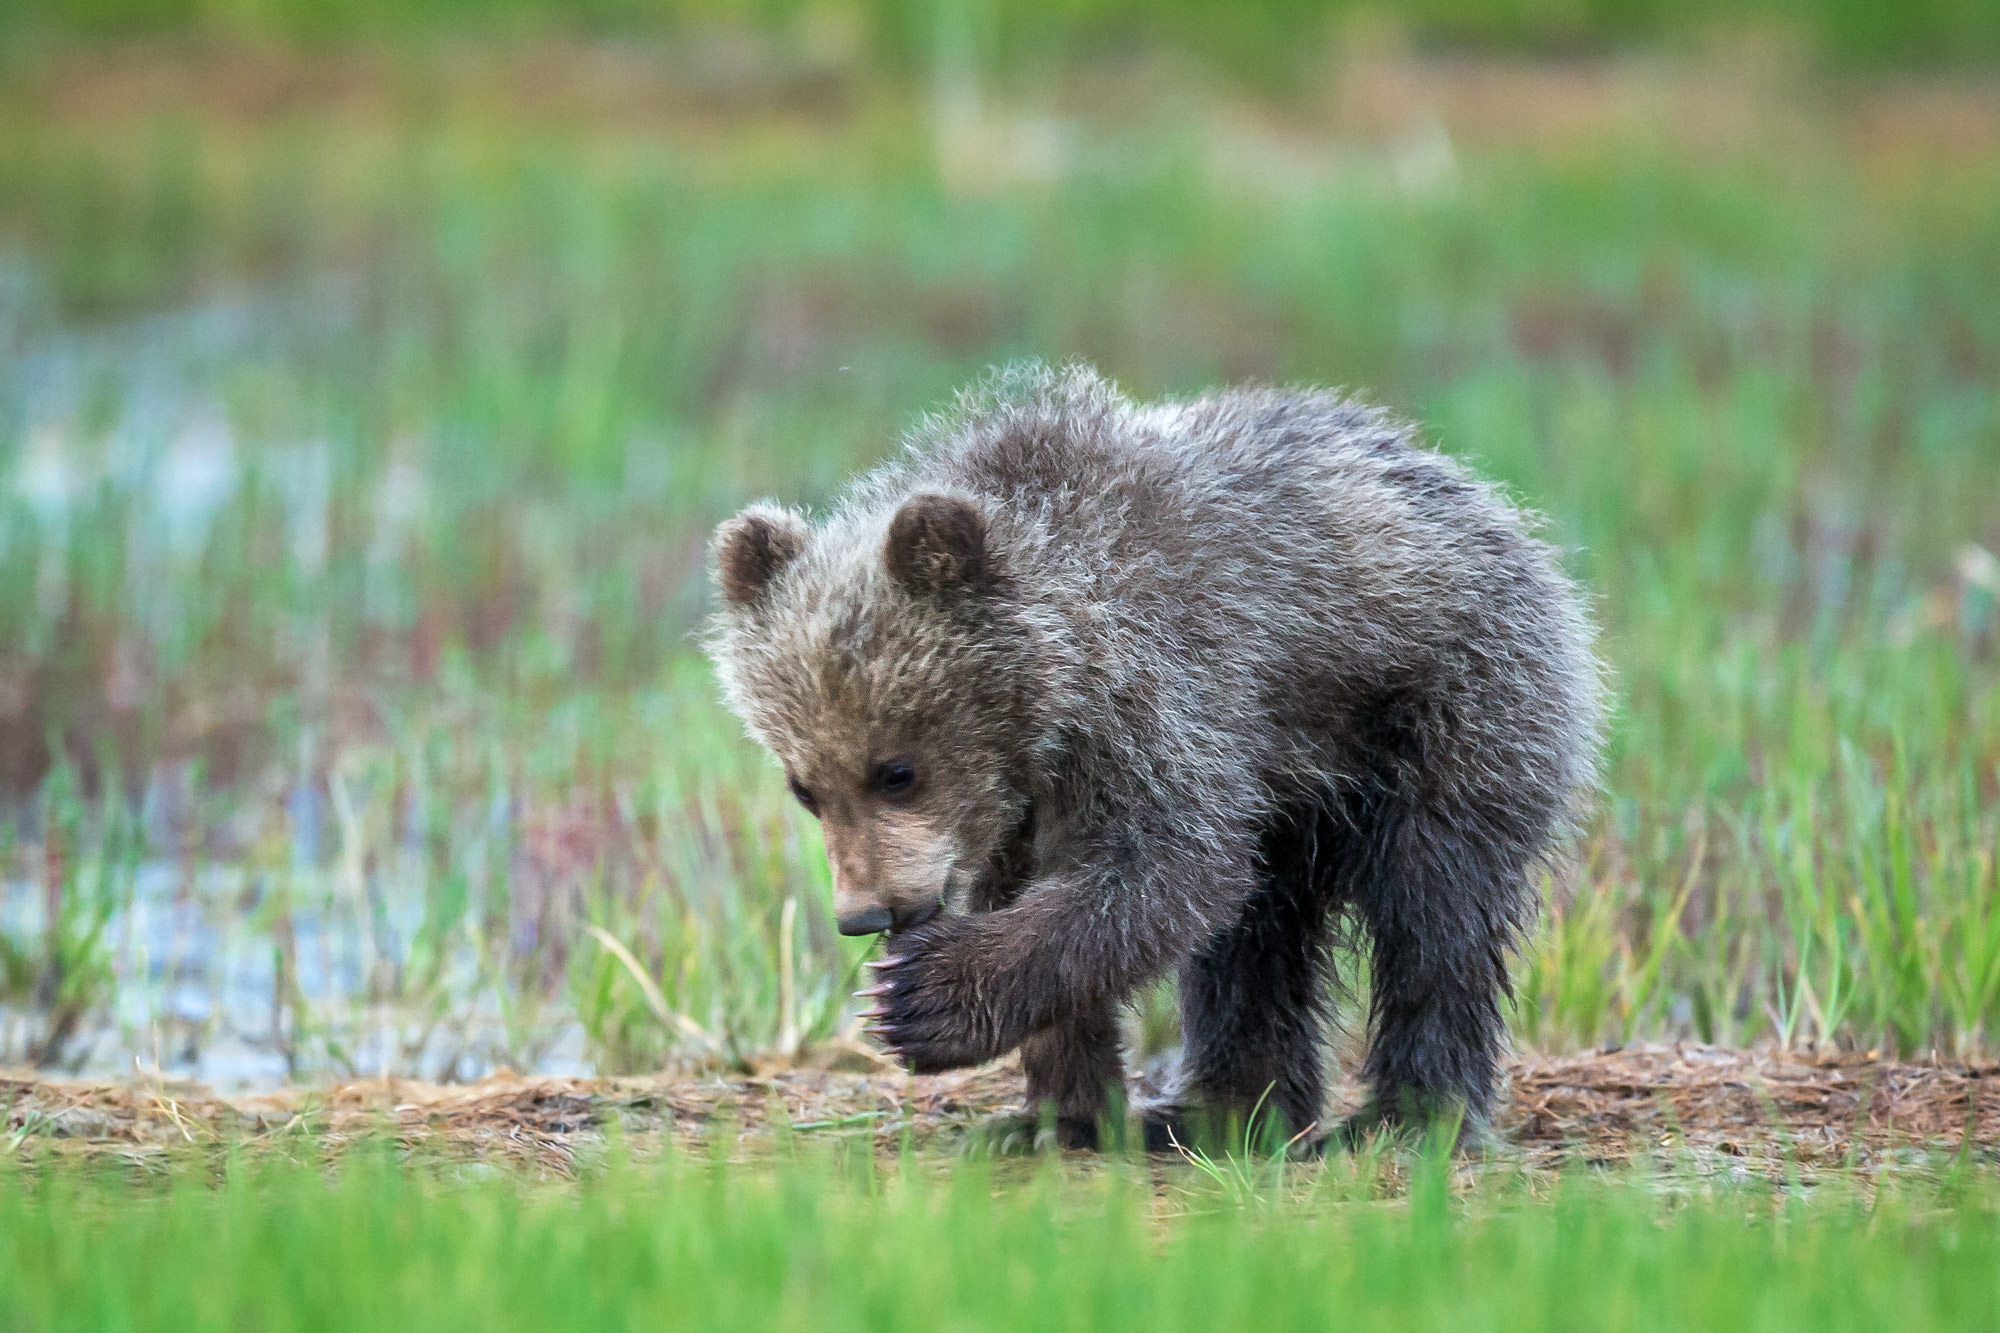 Bear, Brown Bear, Grizzly Bear, Cub, Alaska, limited edition, photograph, fine art, wildlife, photo